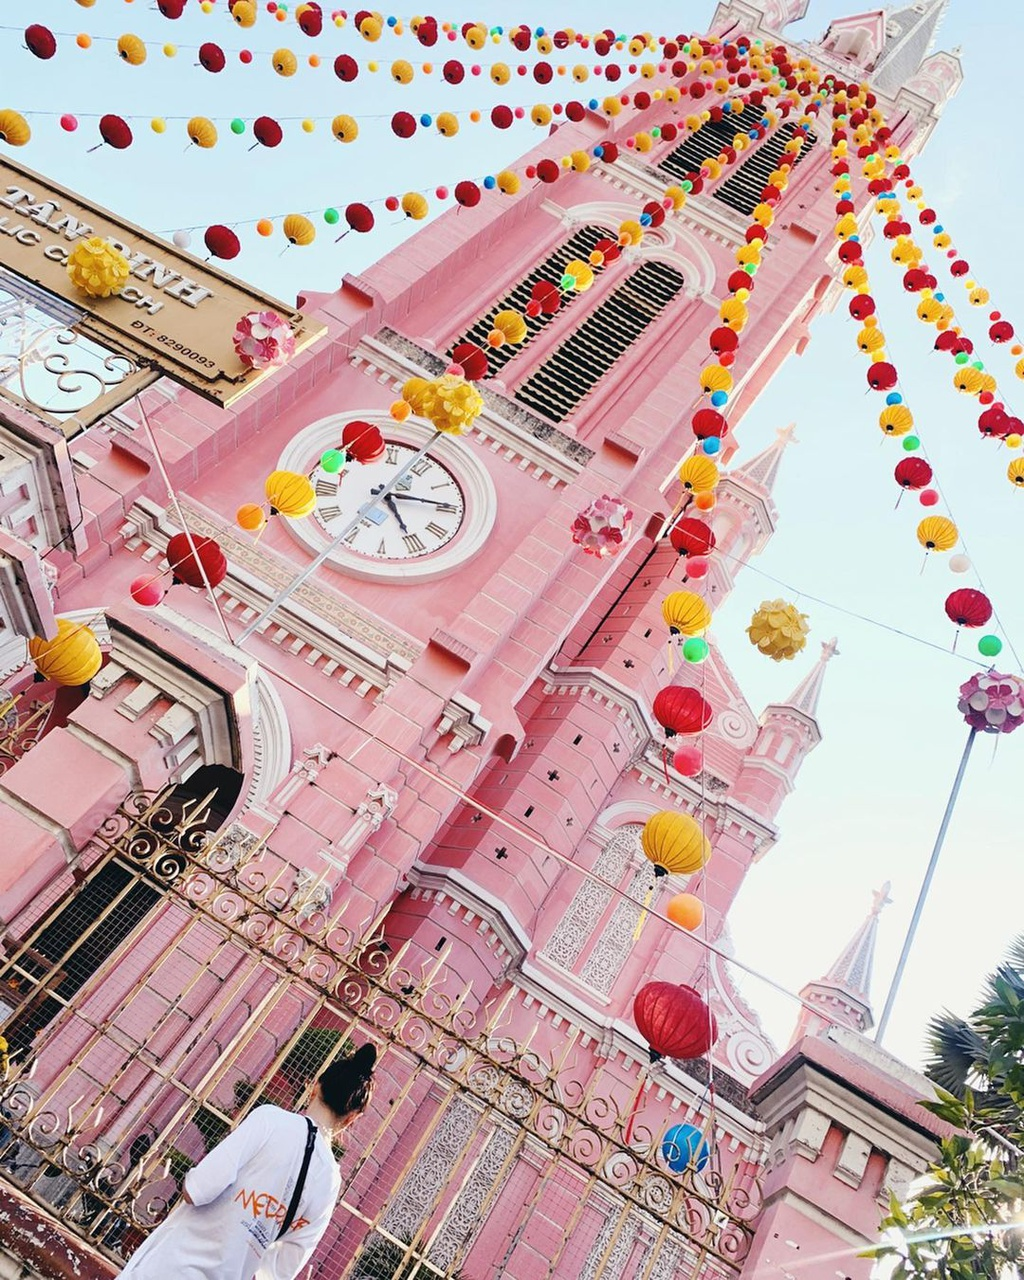 hundred year old churches loved as stunning check in sites in hcmc